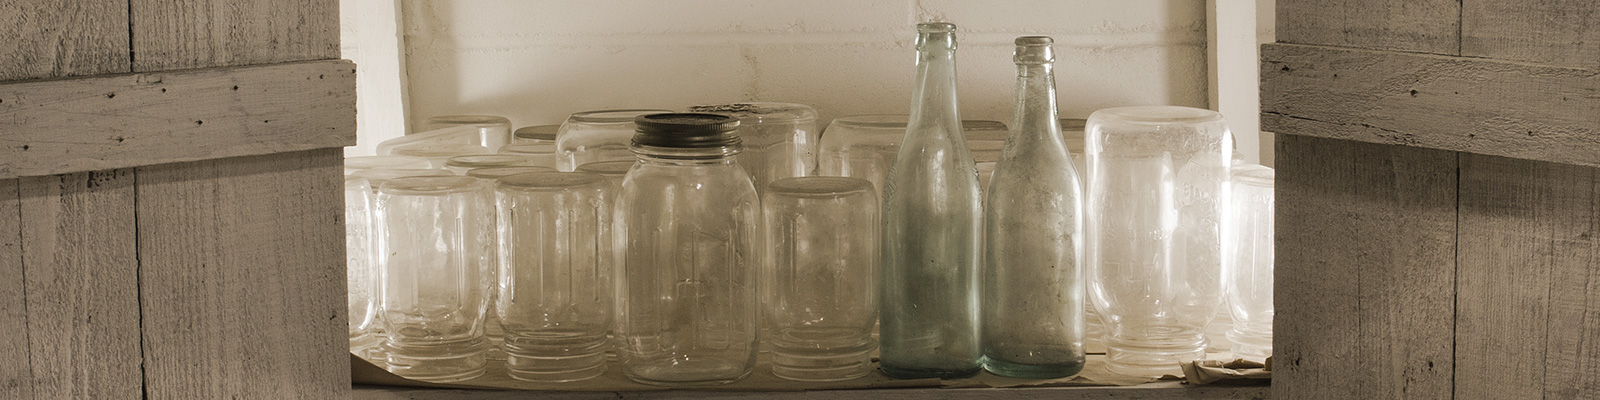 DIY Creepy Specimen Jars